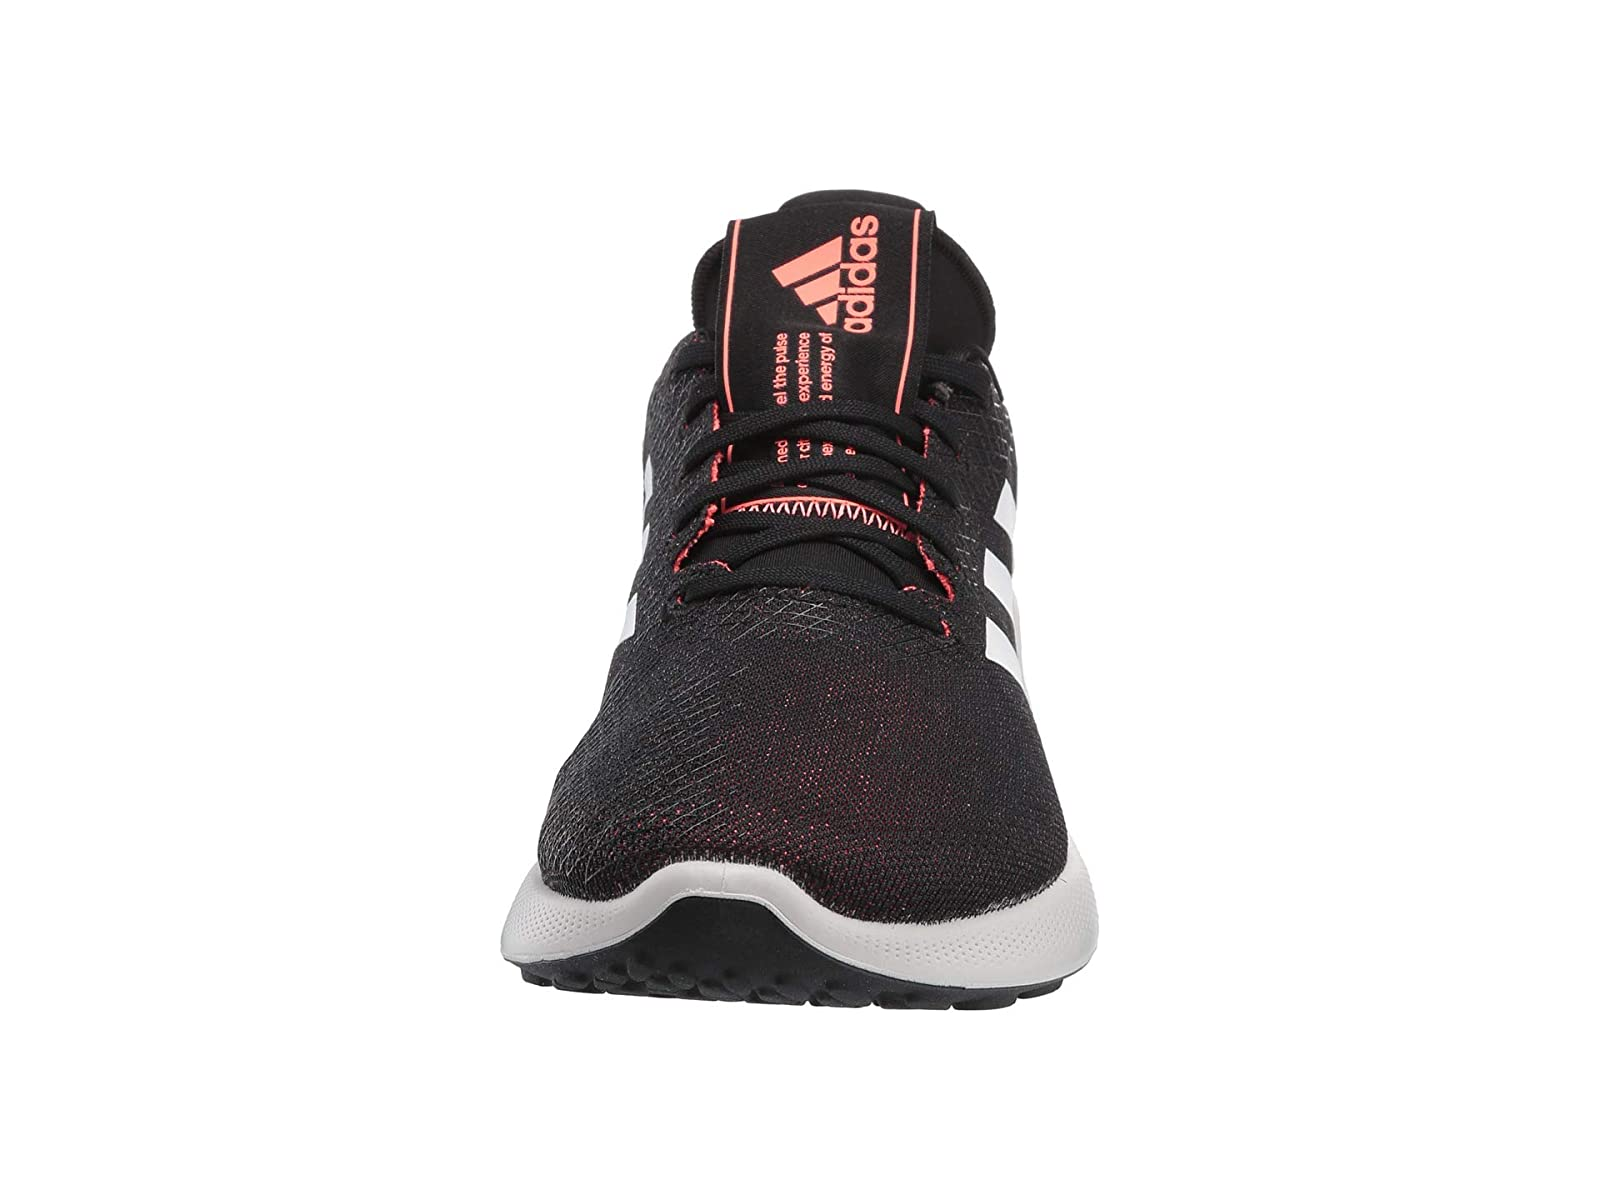 Man-039-s-Sneakers-amp-Athletic-Shoes-adidas-Running-SenseBOUNCE-Street thumbnail 8